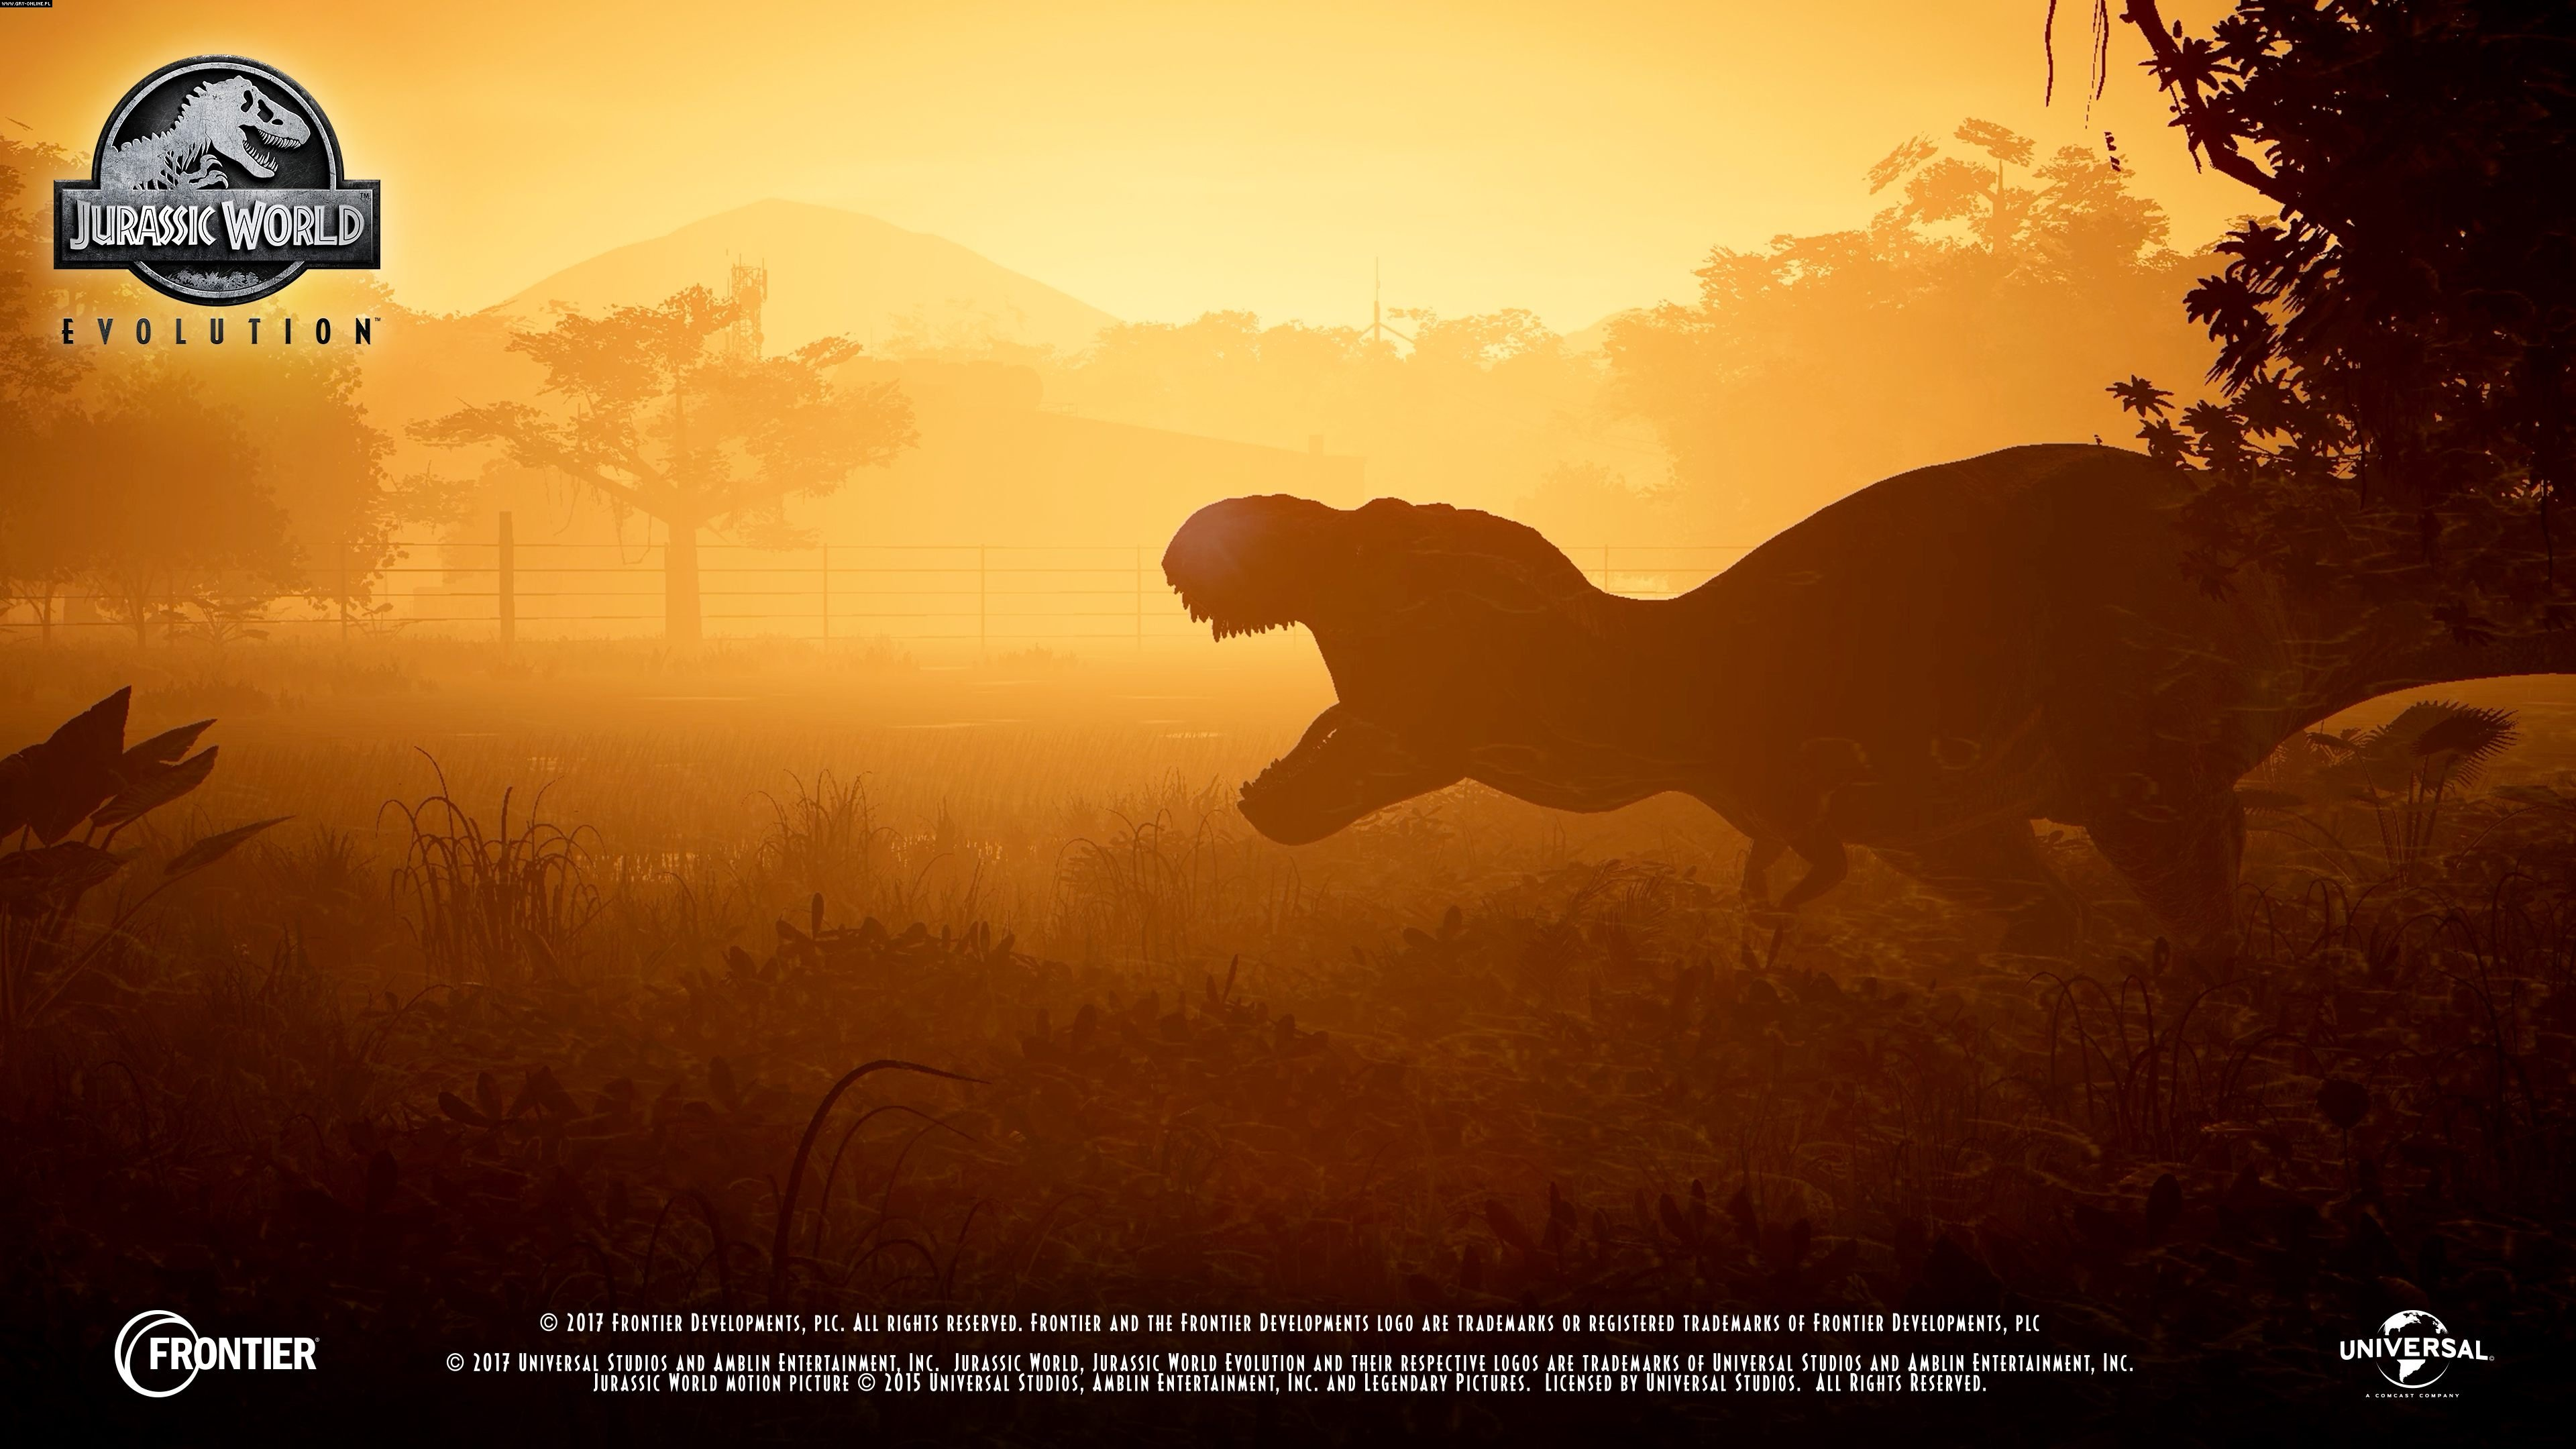 Jurassic World Evolution PC, PS4, XONE Games Image 28/28, Frontier Developments